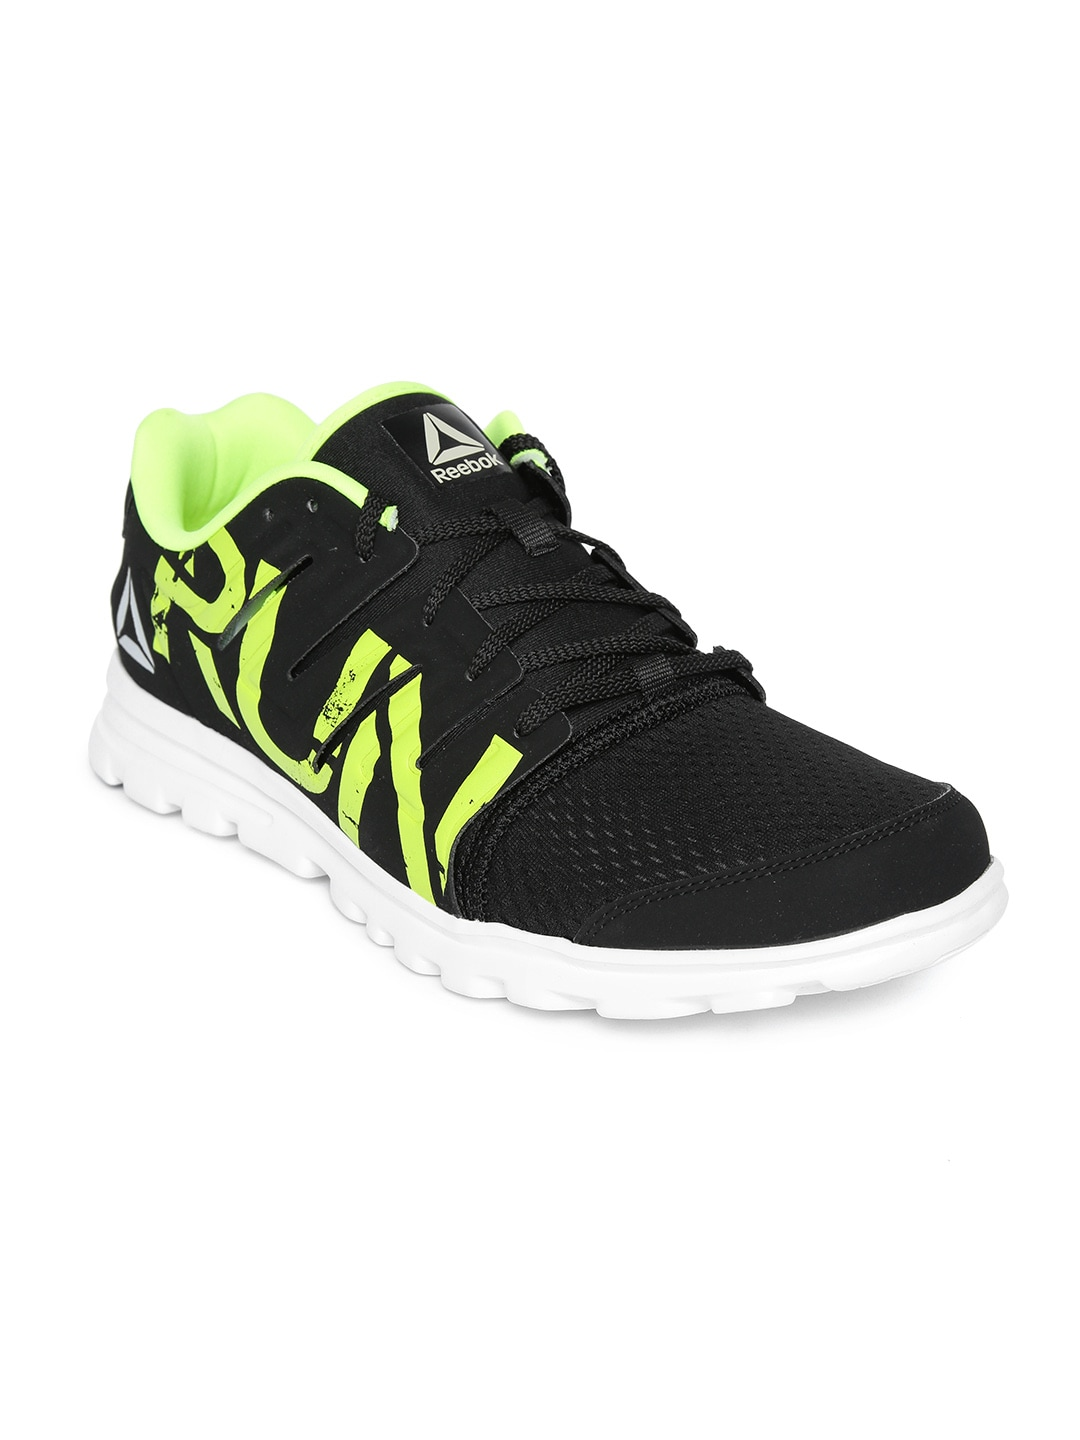 premium selection 8b9a3 d301c Reebok Sports Shoes - Buy Reebok Sports Shoes in India   Myntra